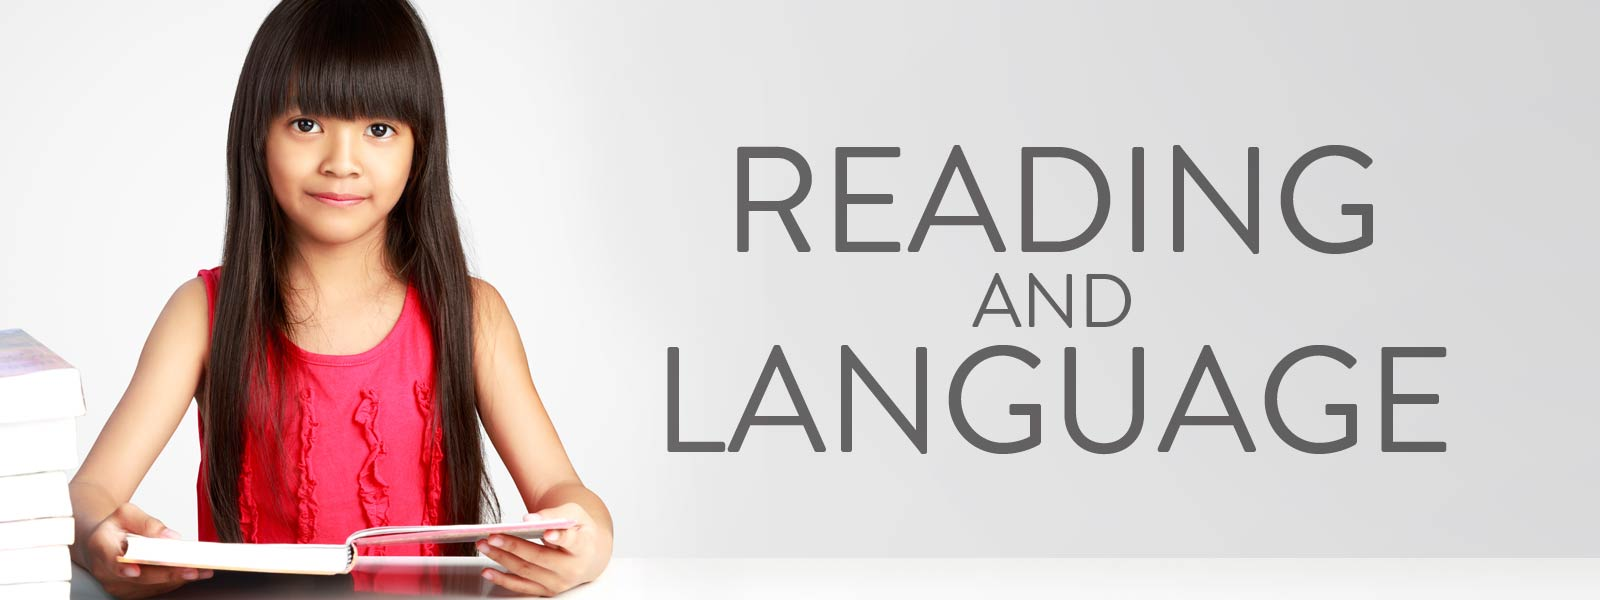 Reading and Language